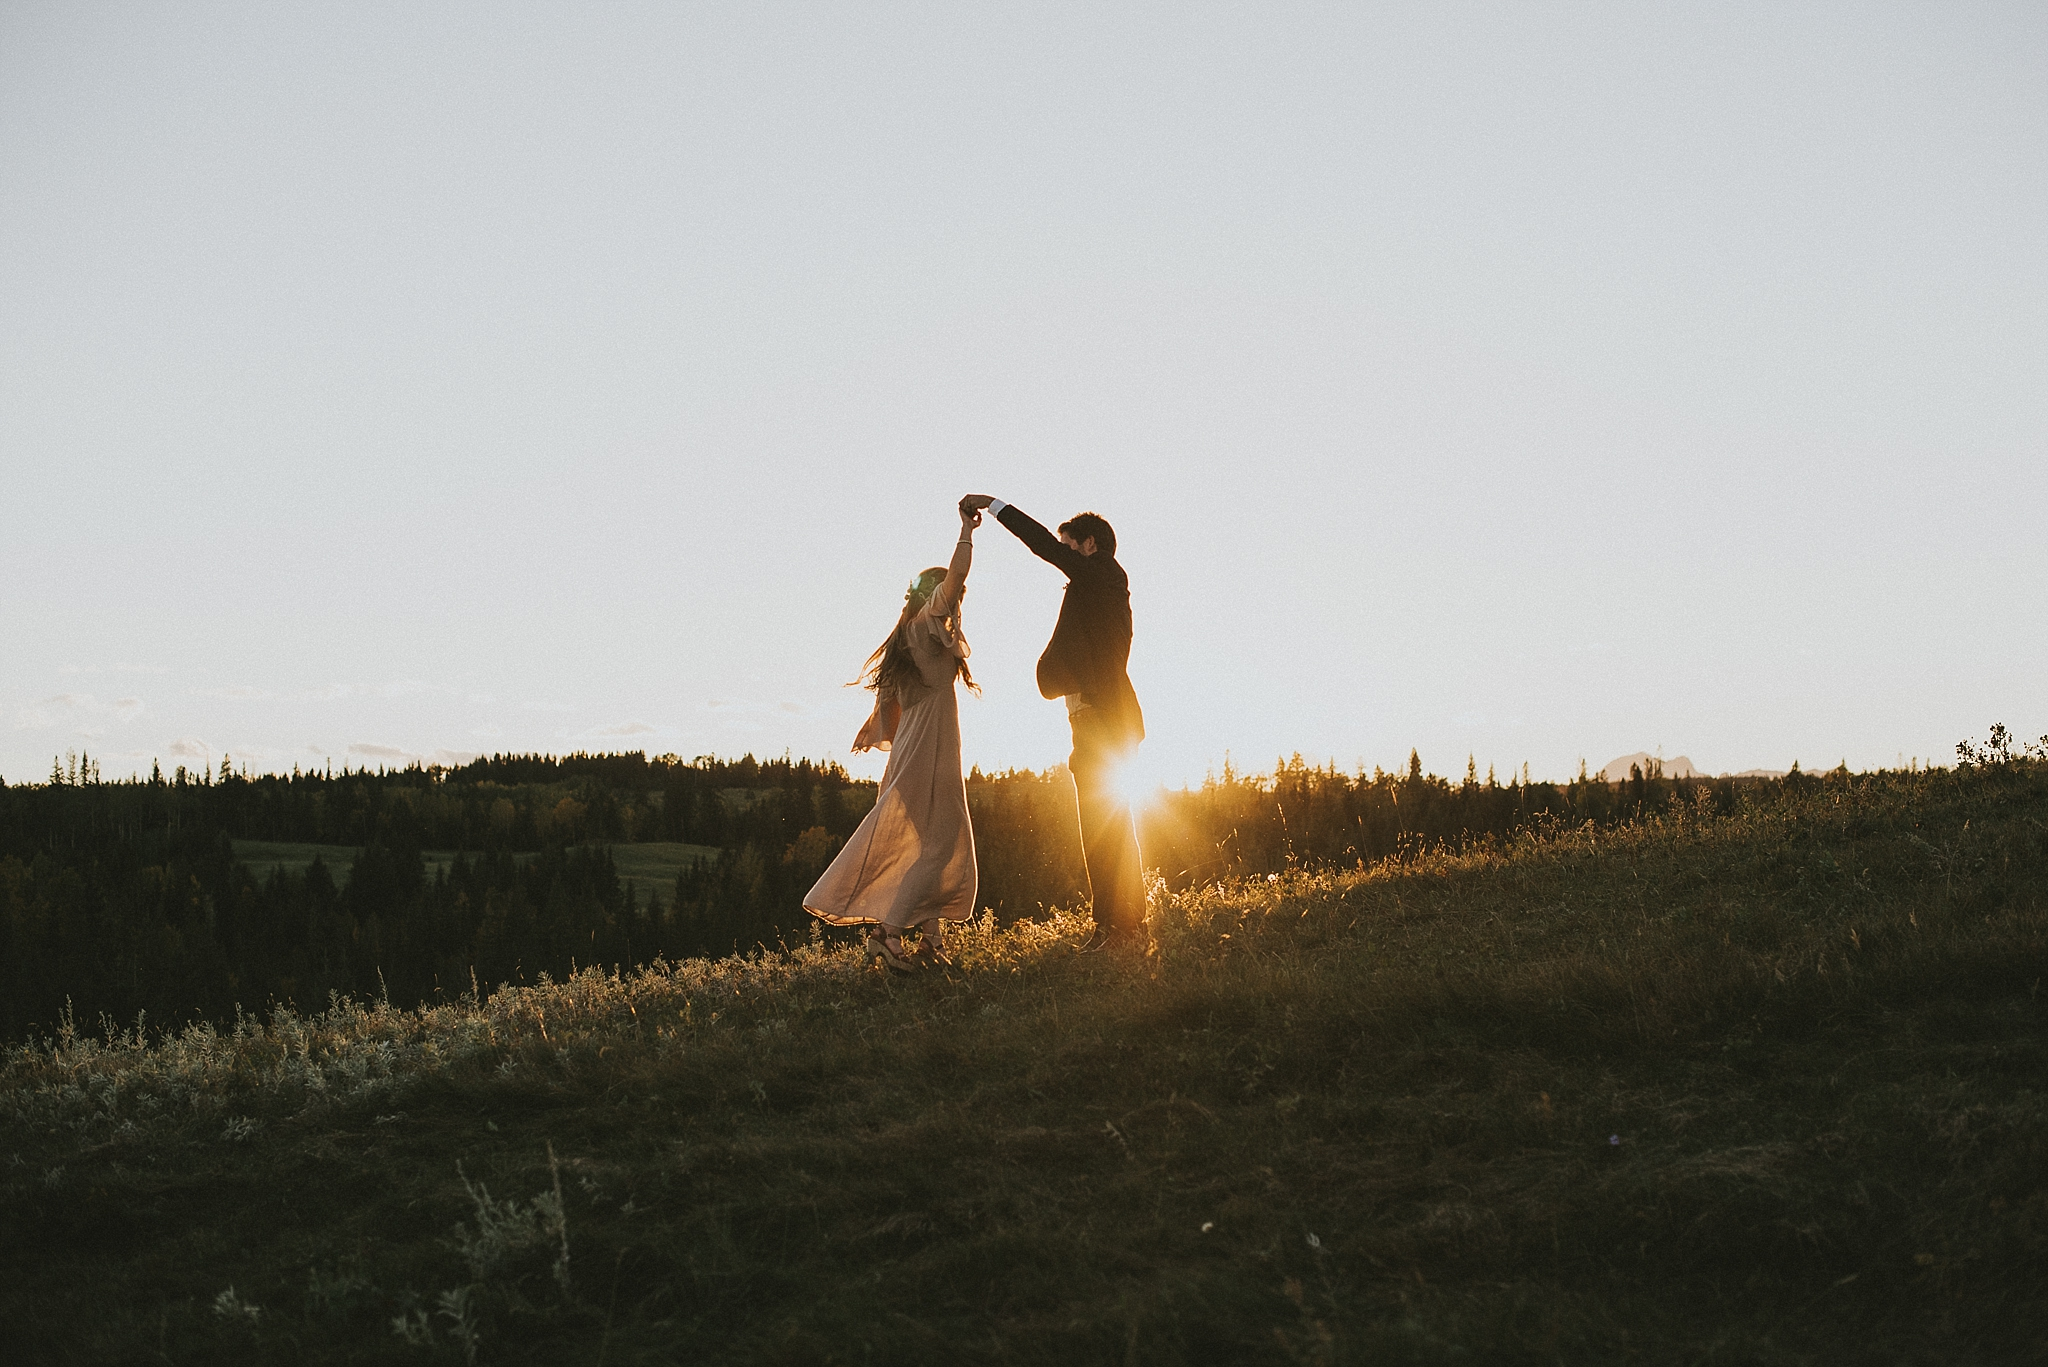 kananaskis elopement sunset bride groom dance spin